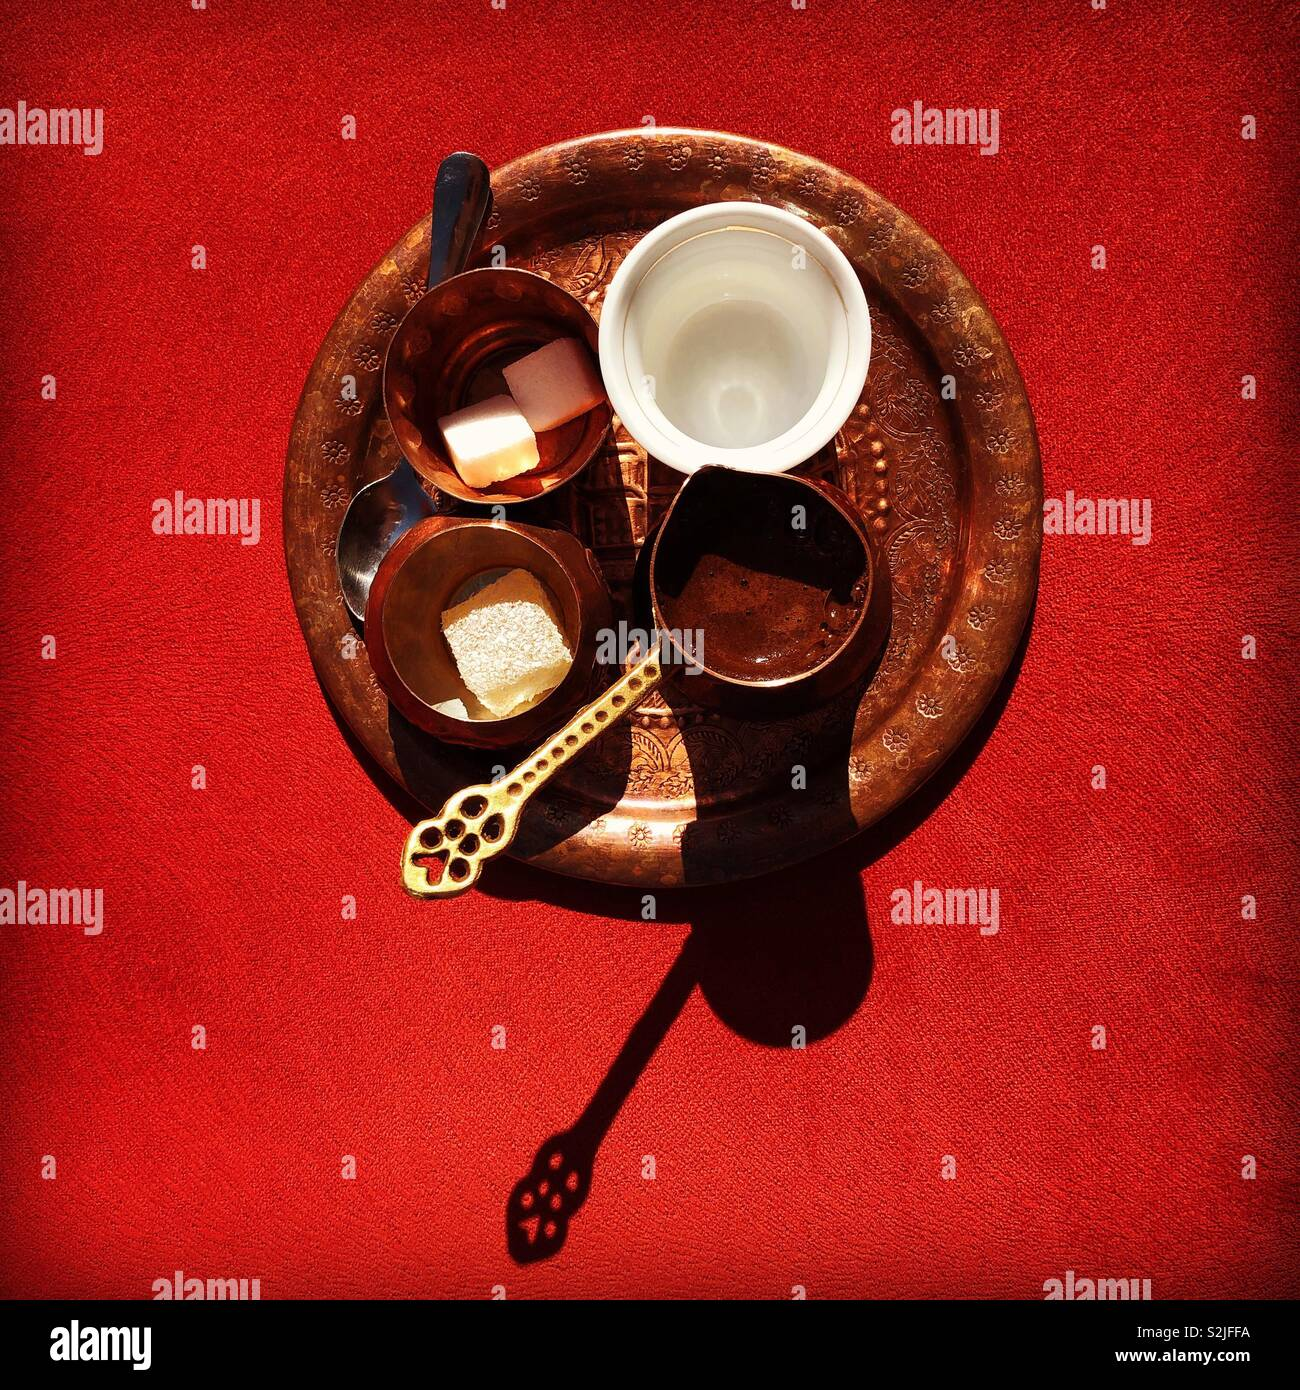 Bosnian coffee set on the red background in Sarajevo, Bosnia and Herzegovina. - Stock Image